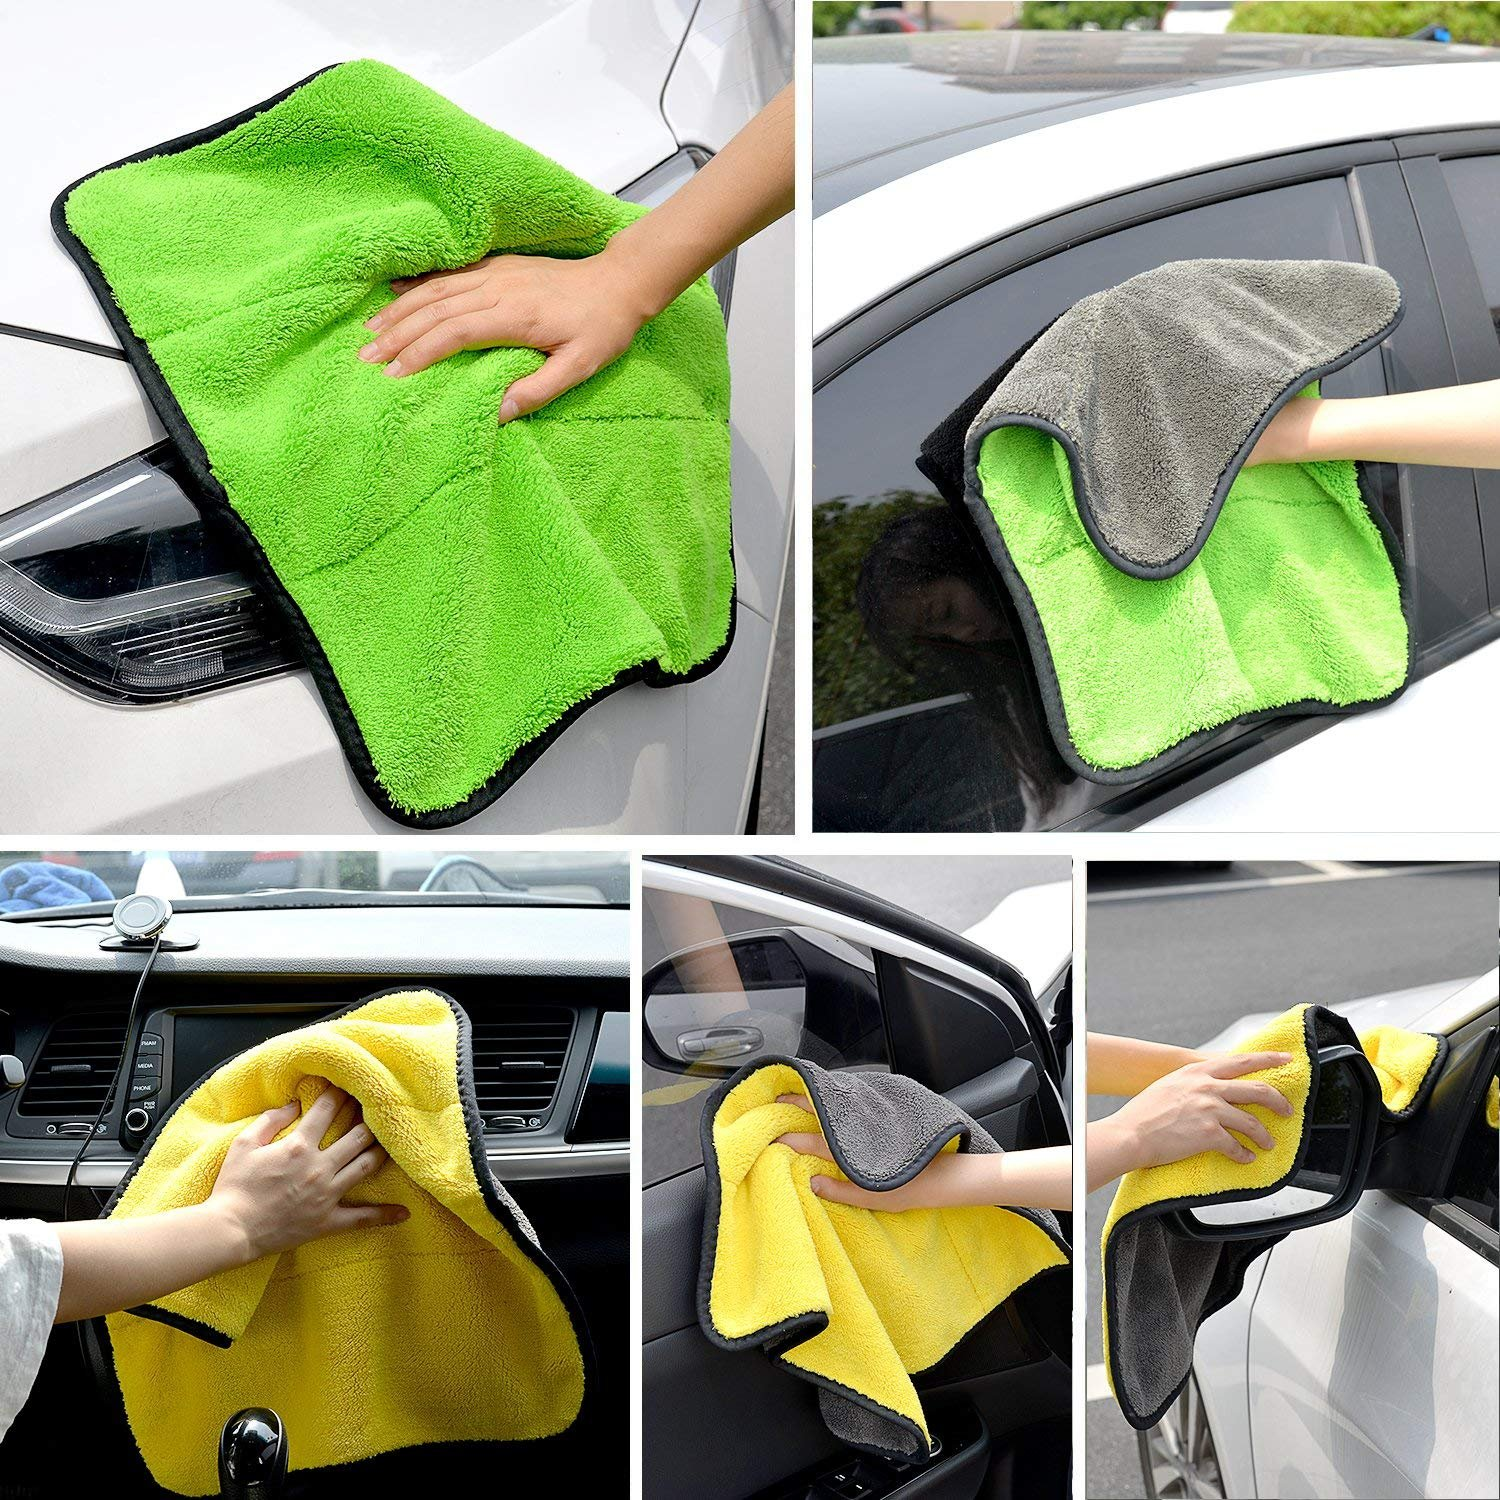 Lint Free Microfiber Dual Layer Ultra-Thick Car Polishing and Drying Cloth Auto Detailing Towels,15 x 17.7 AIVS 850GSM Microfiber Cleaning Cloths 3-pack